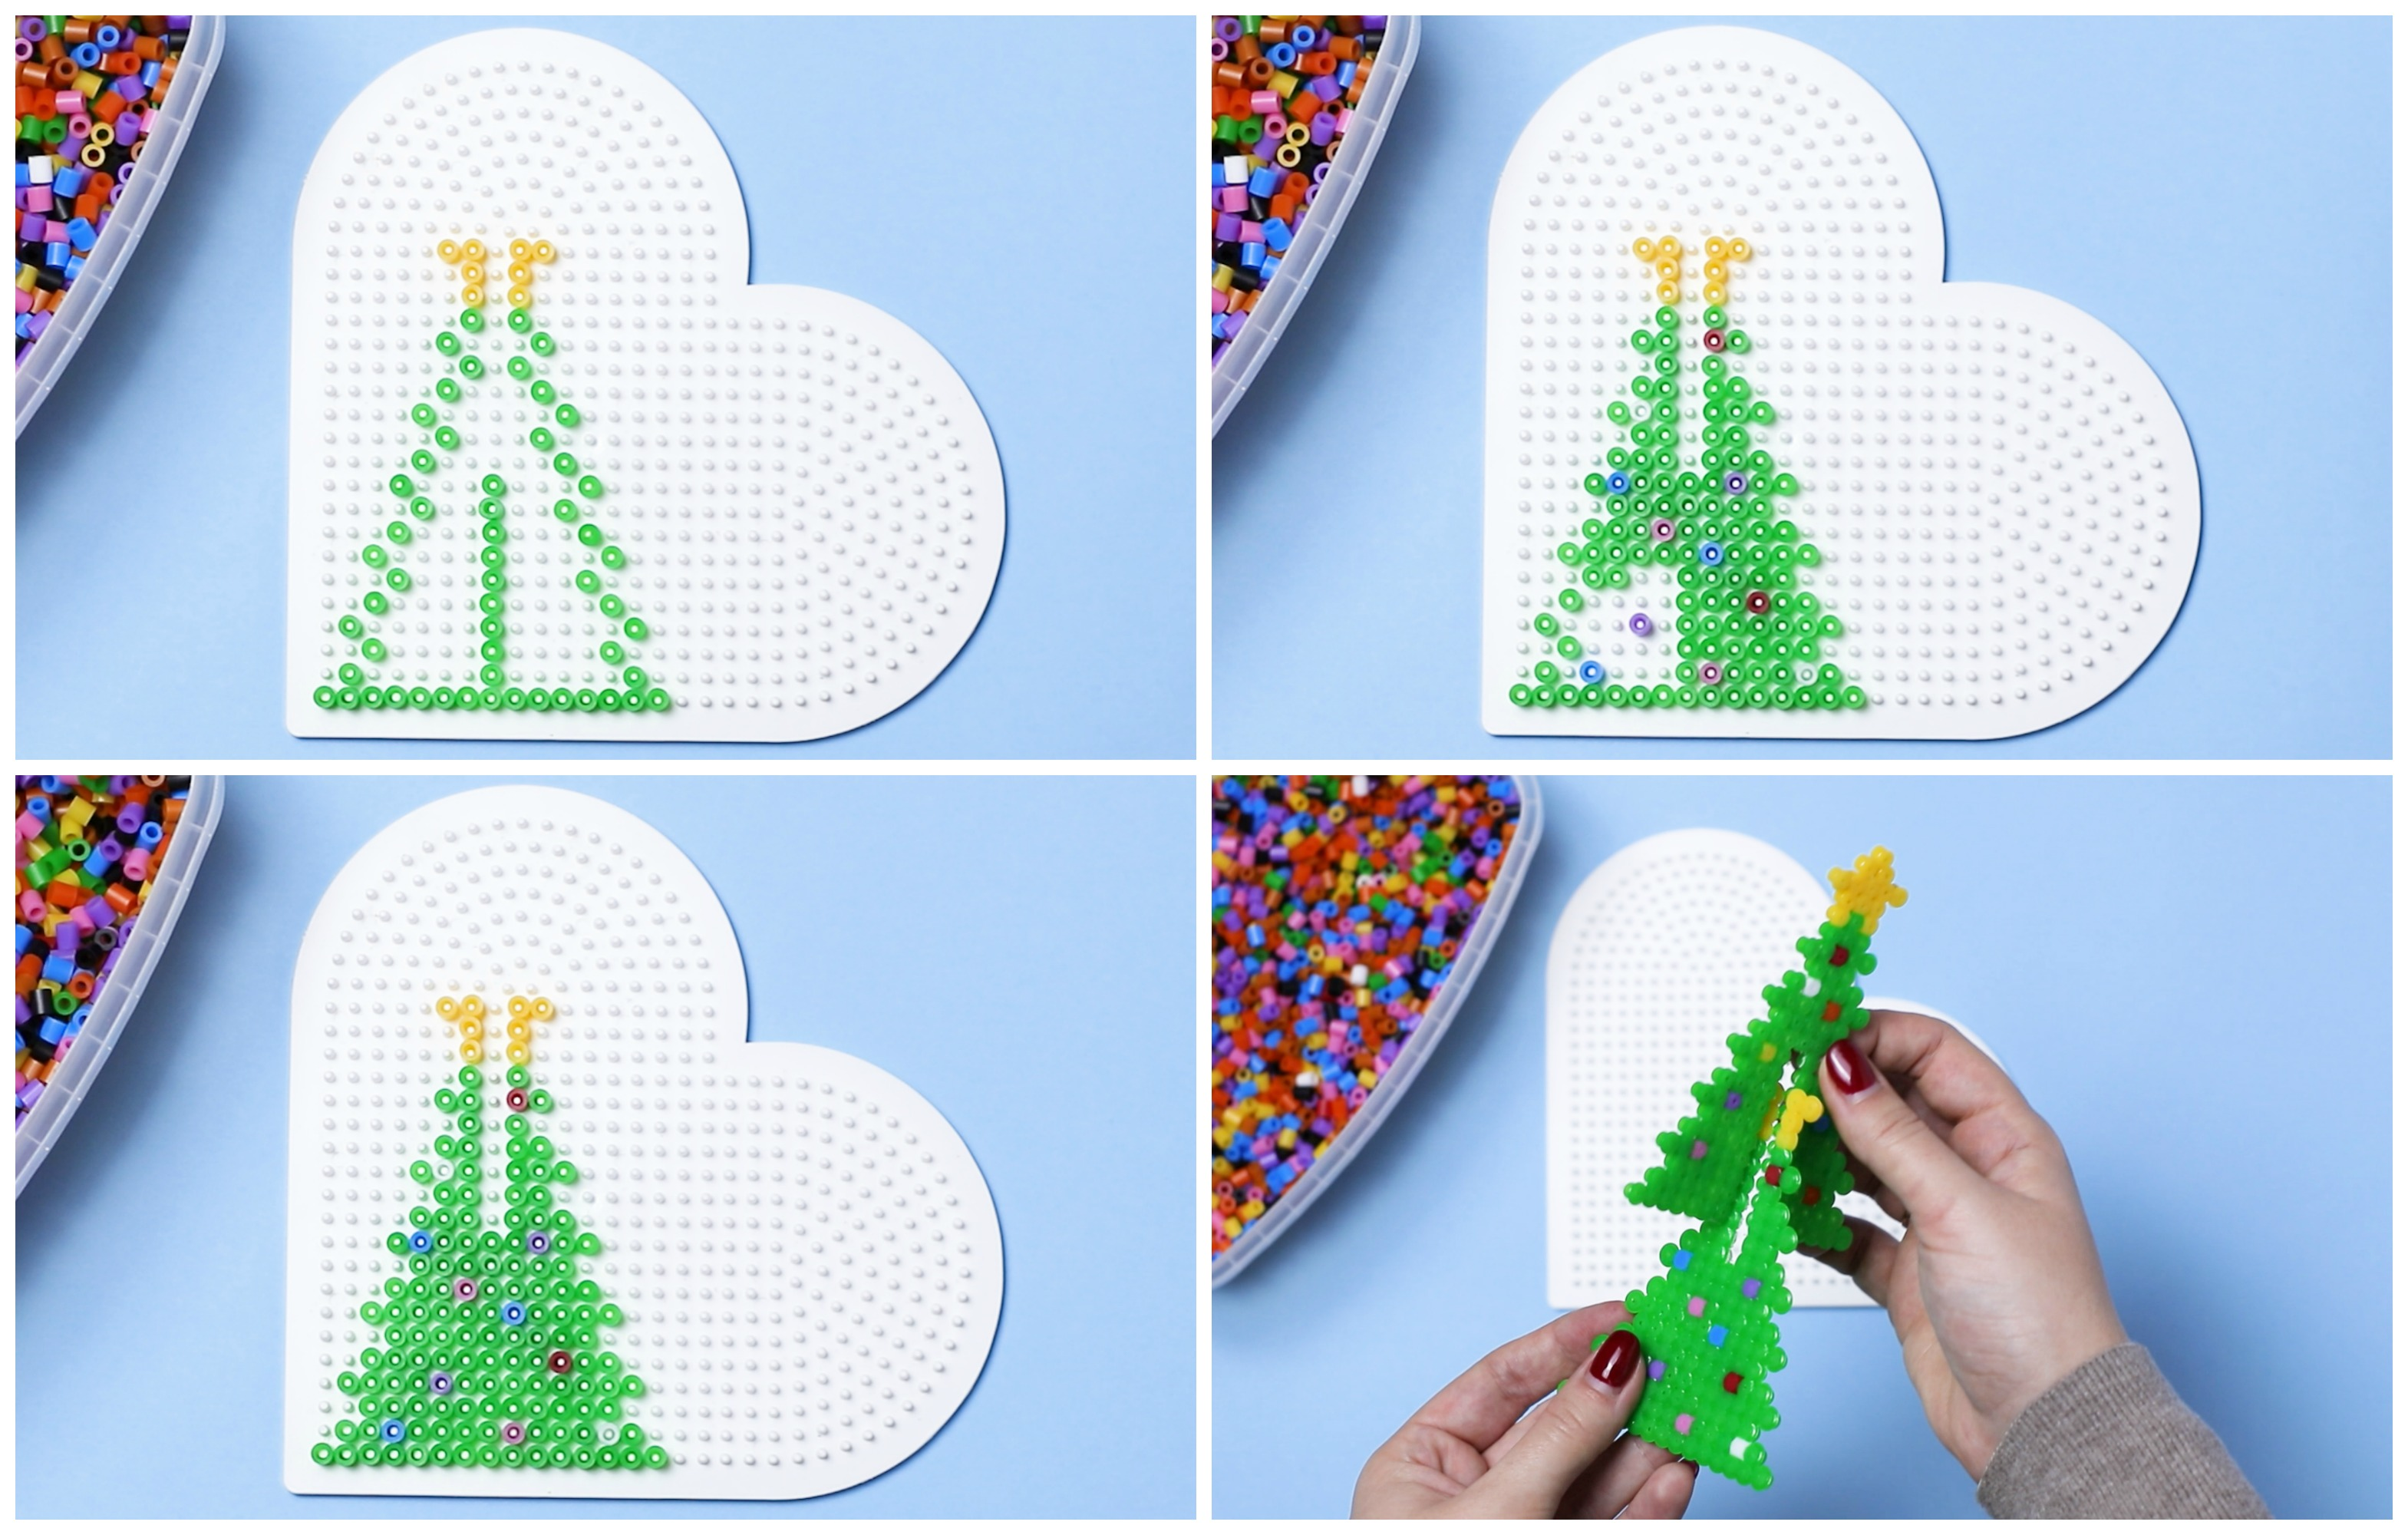 3D Christmas Tree Perler Bead Project